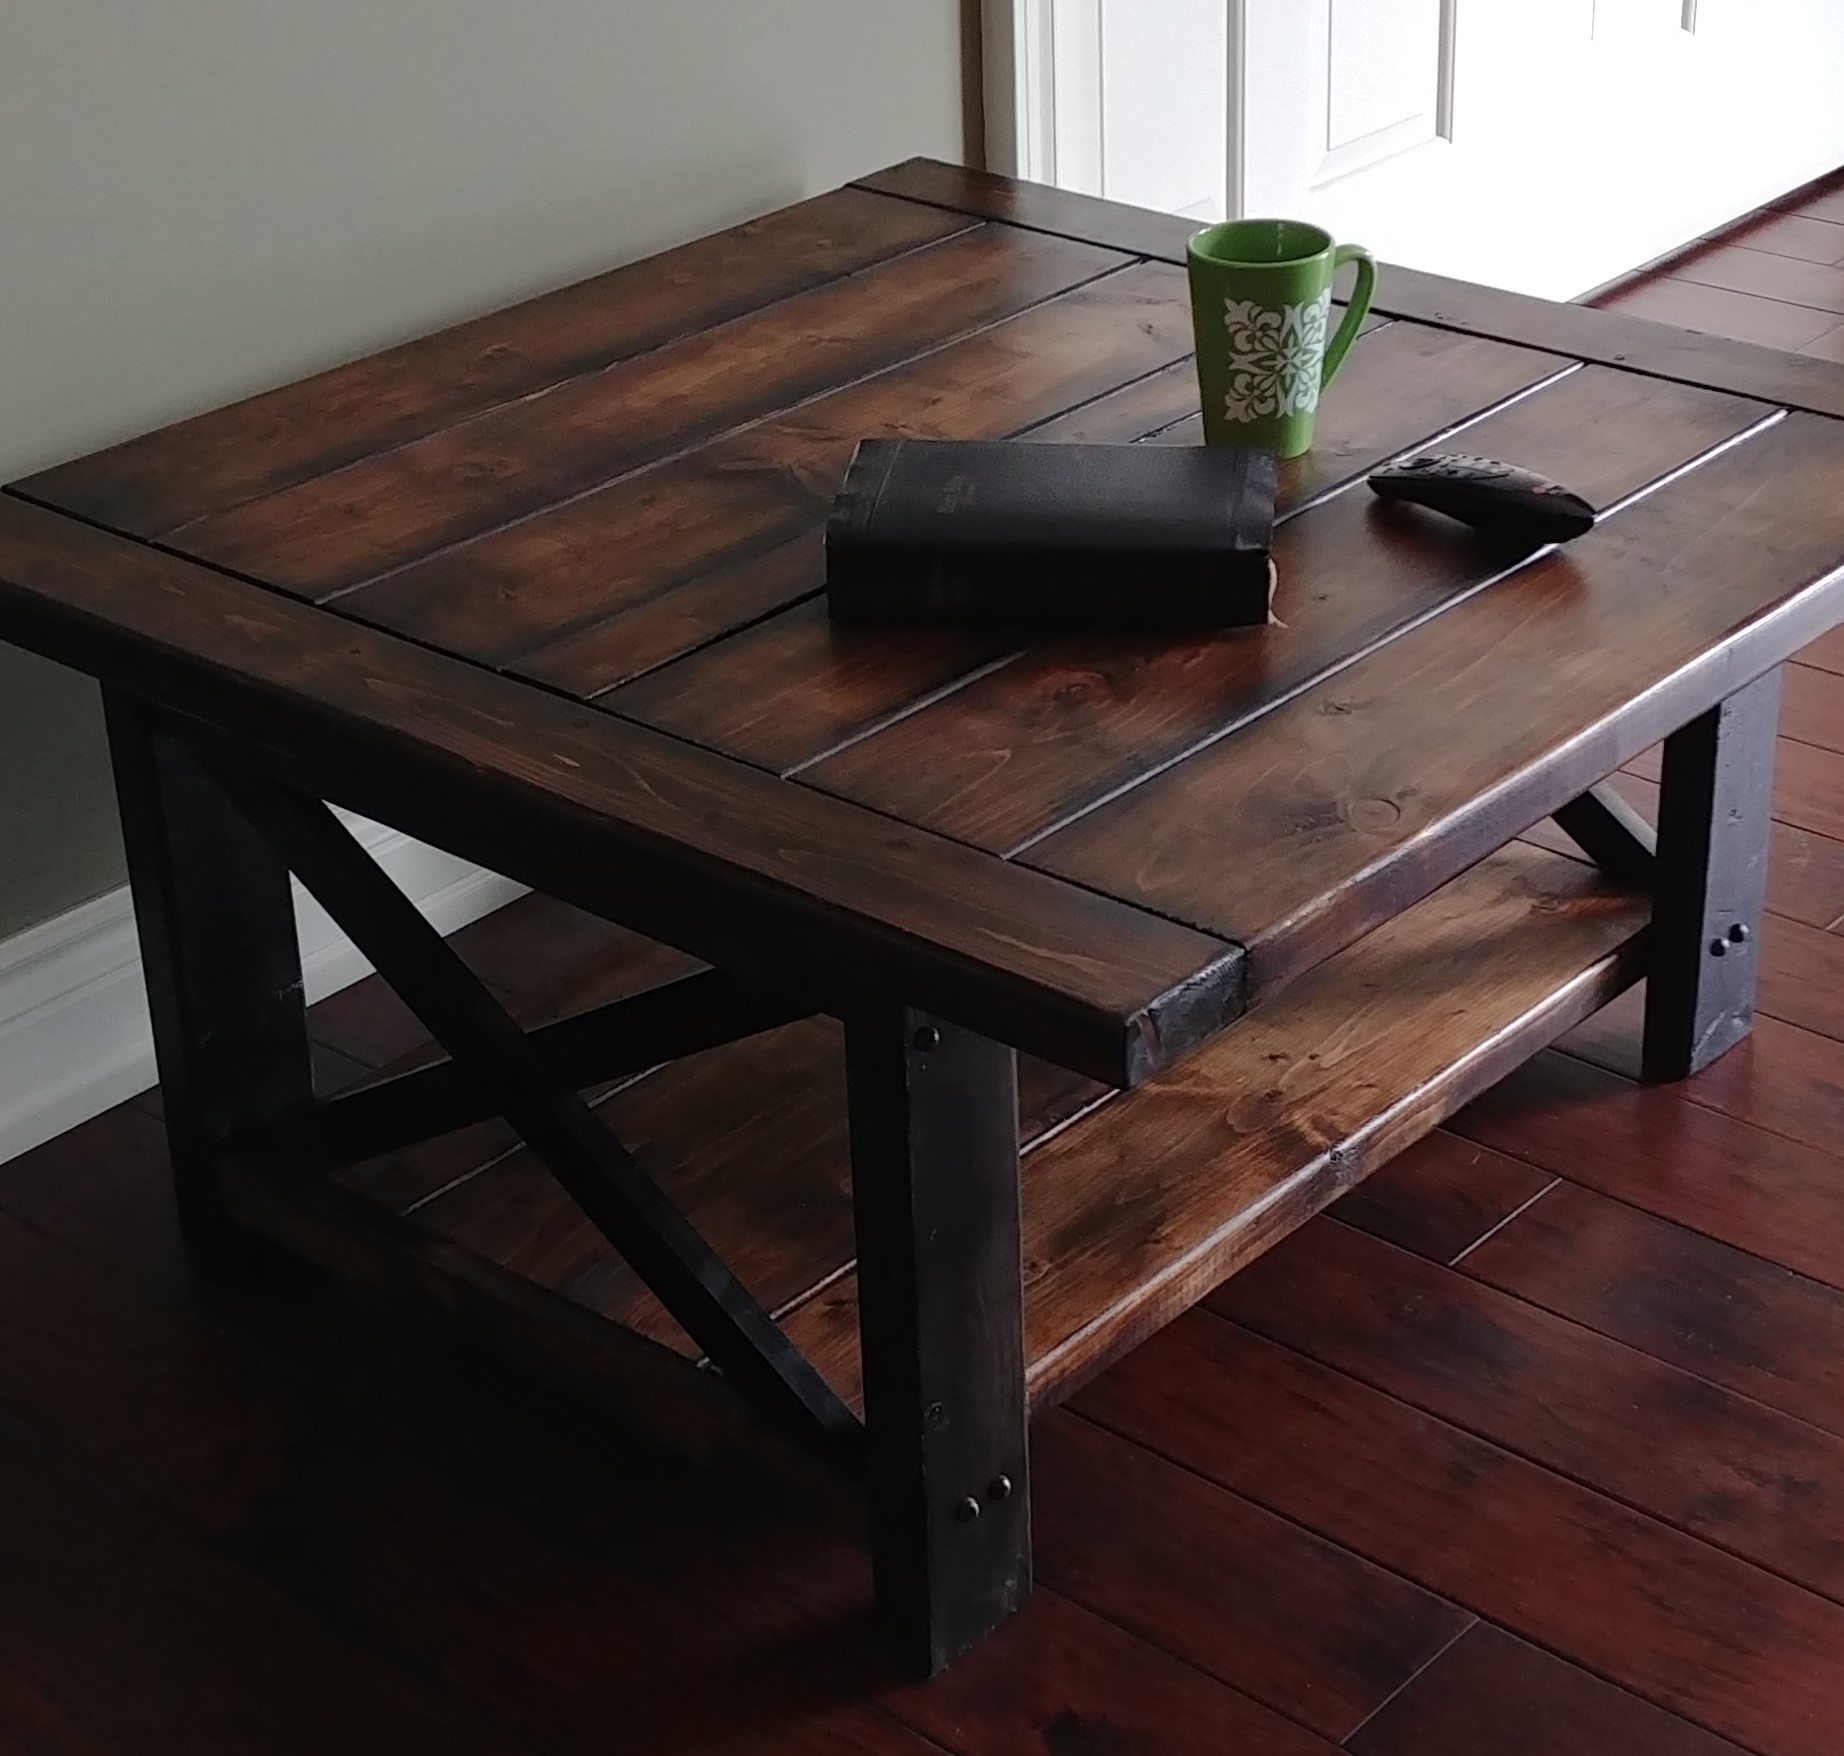 new new rustic coffee table wooden that be nice